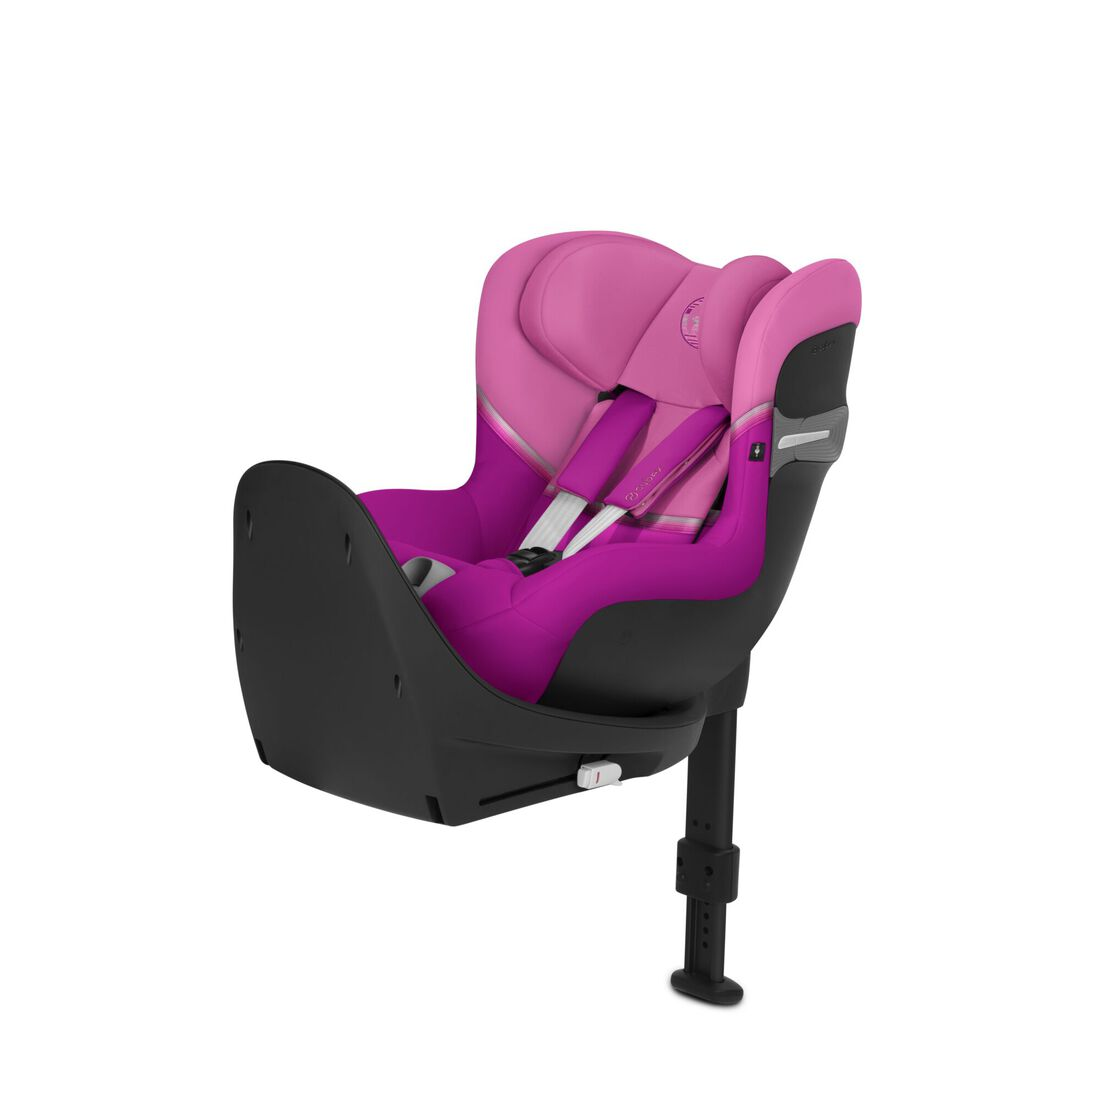 CYBEX Sirona SX2 i-Size - Magnolia Pink in Magnolia Pink large image number 1